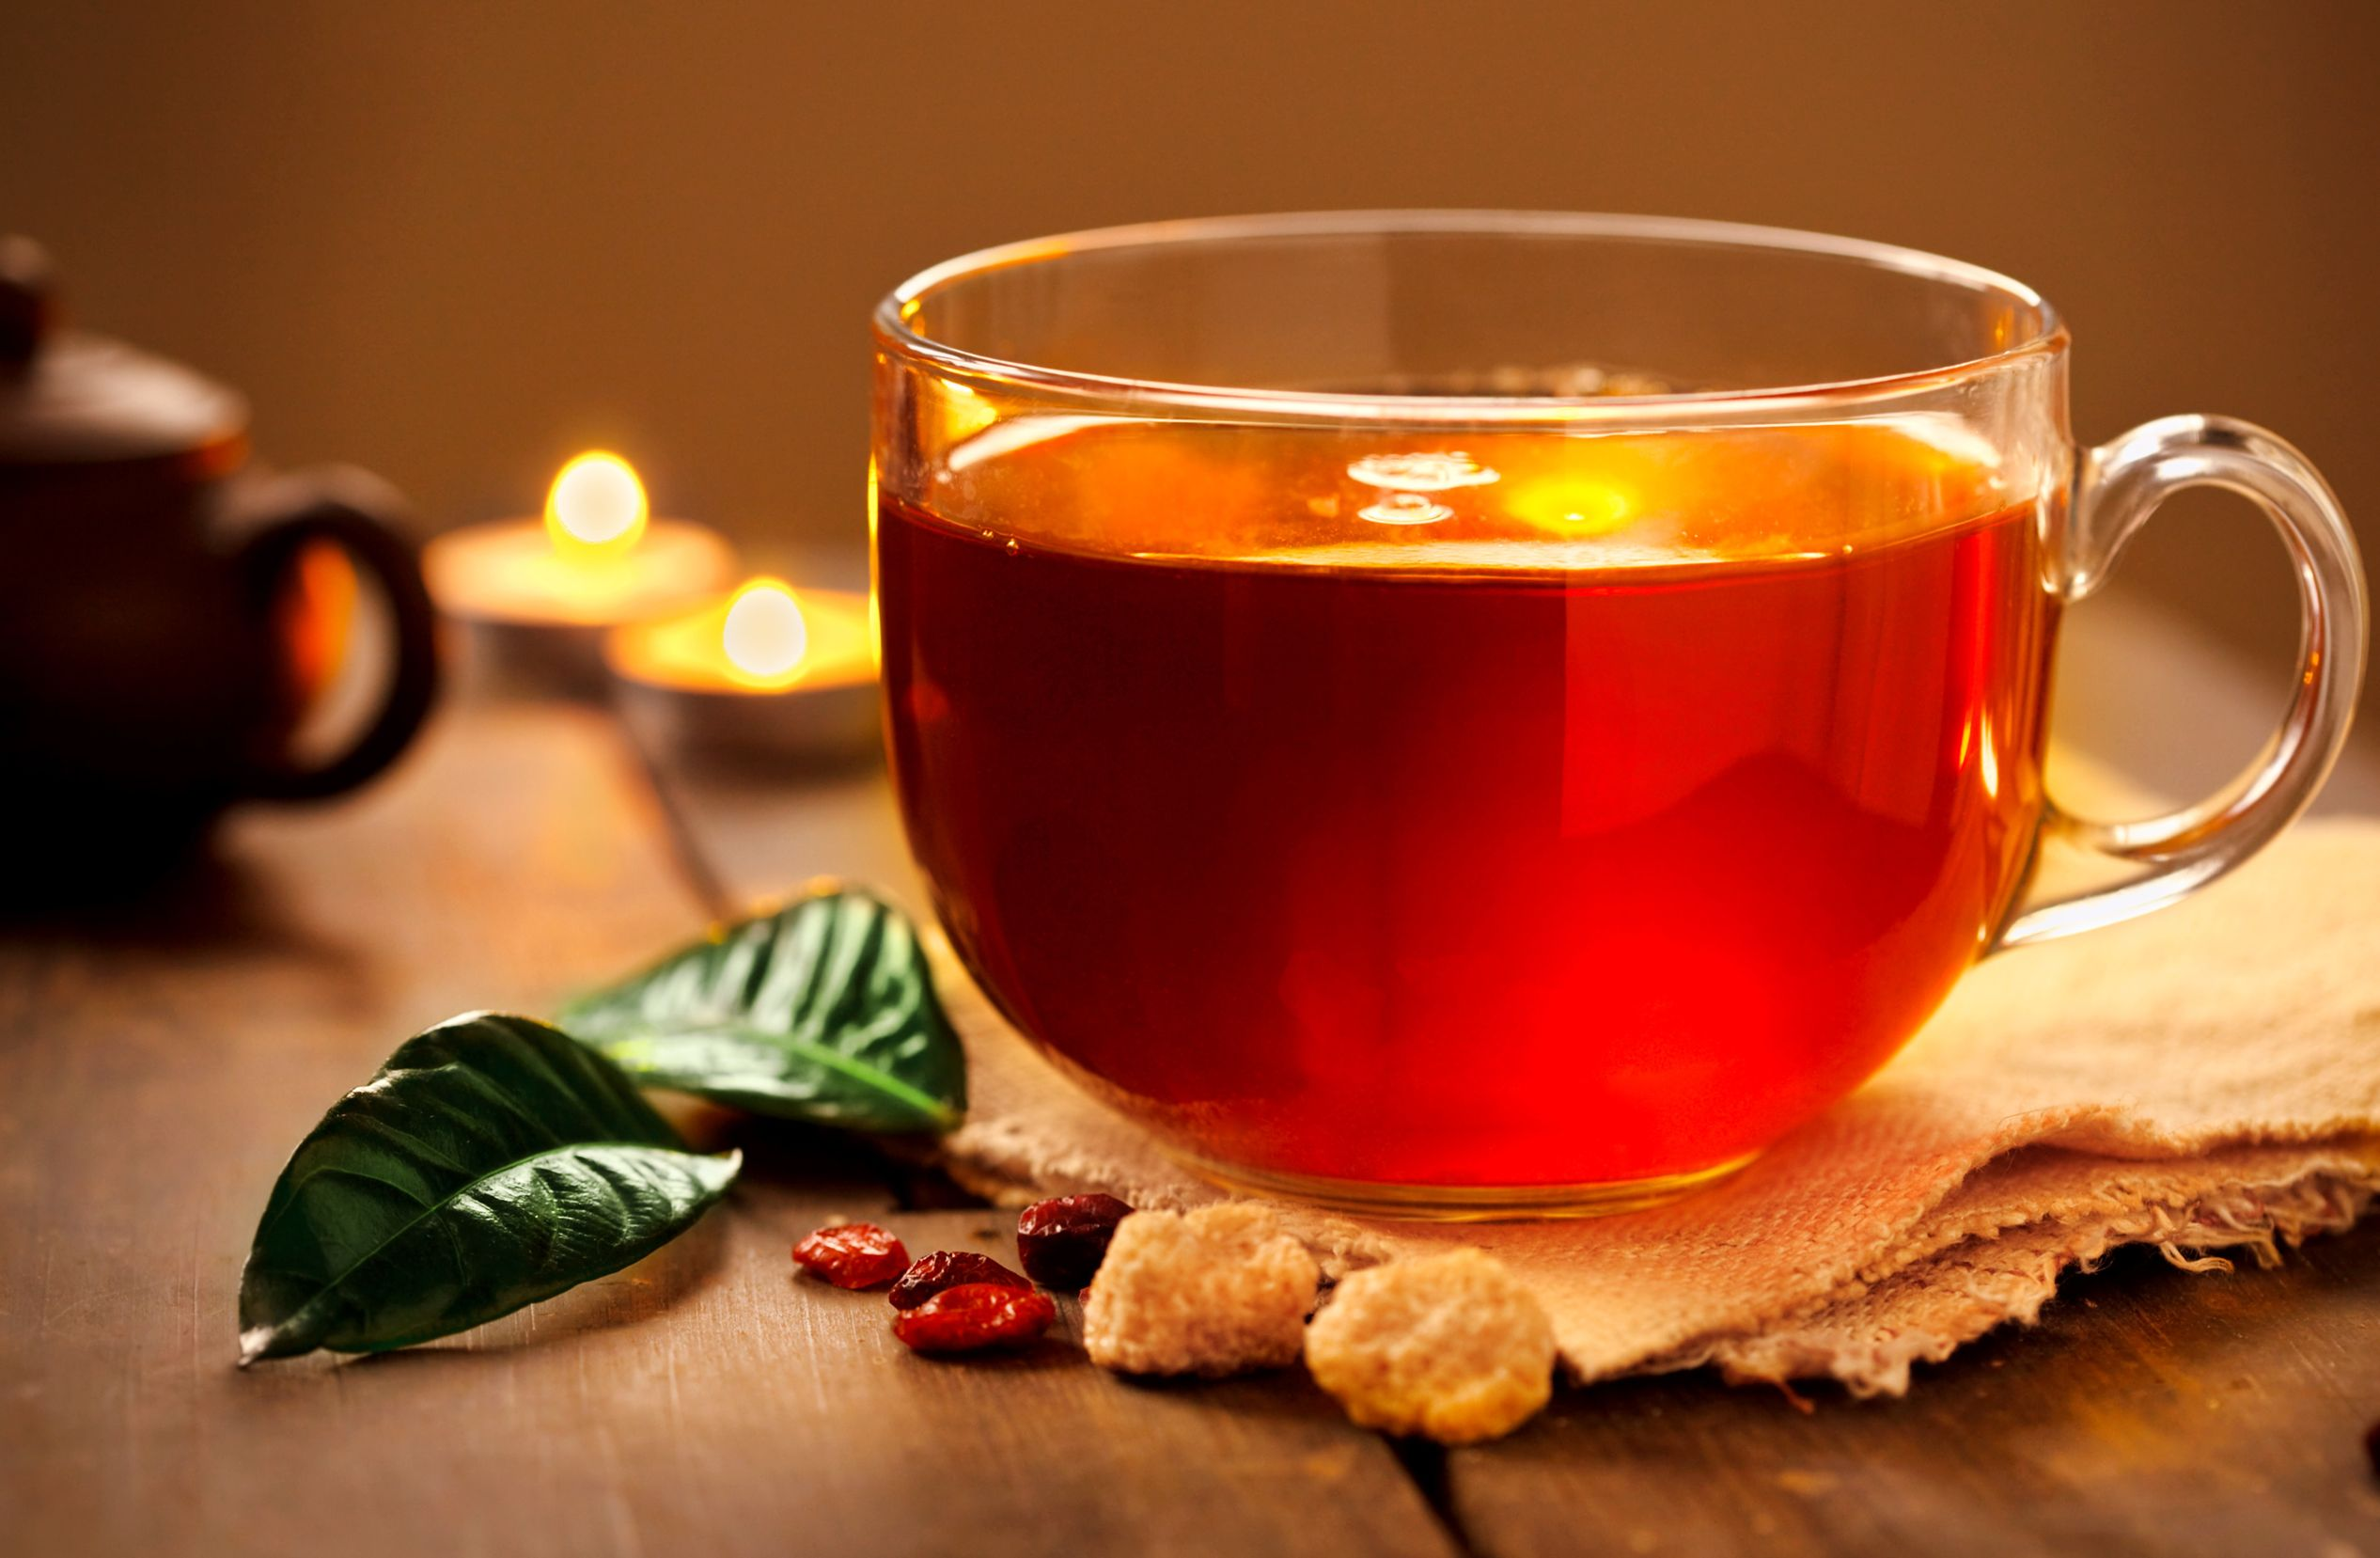 Global Tea Market Analysis By Industry Trends, Size, Share, Revenue Growth, Development And Demand Forecast To 2024